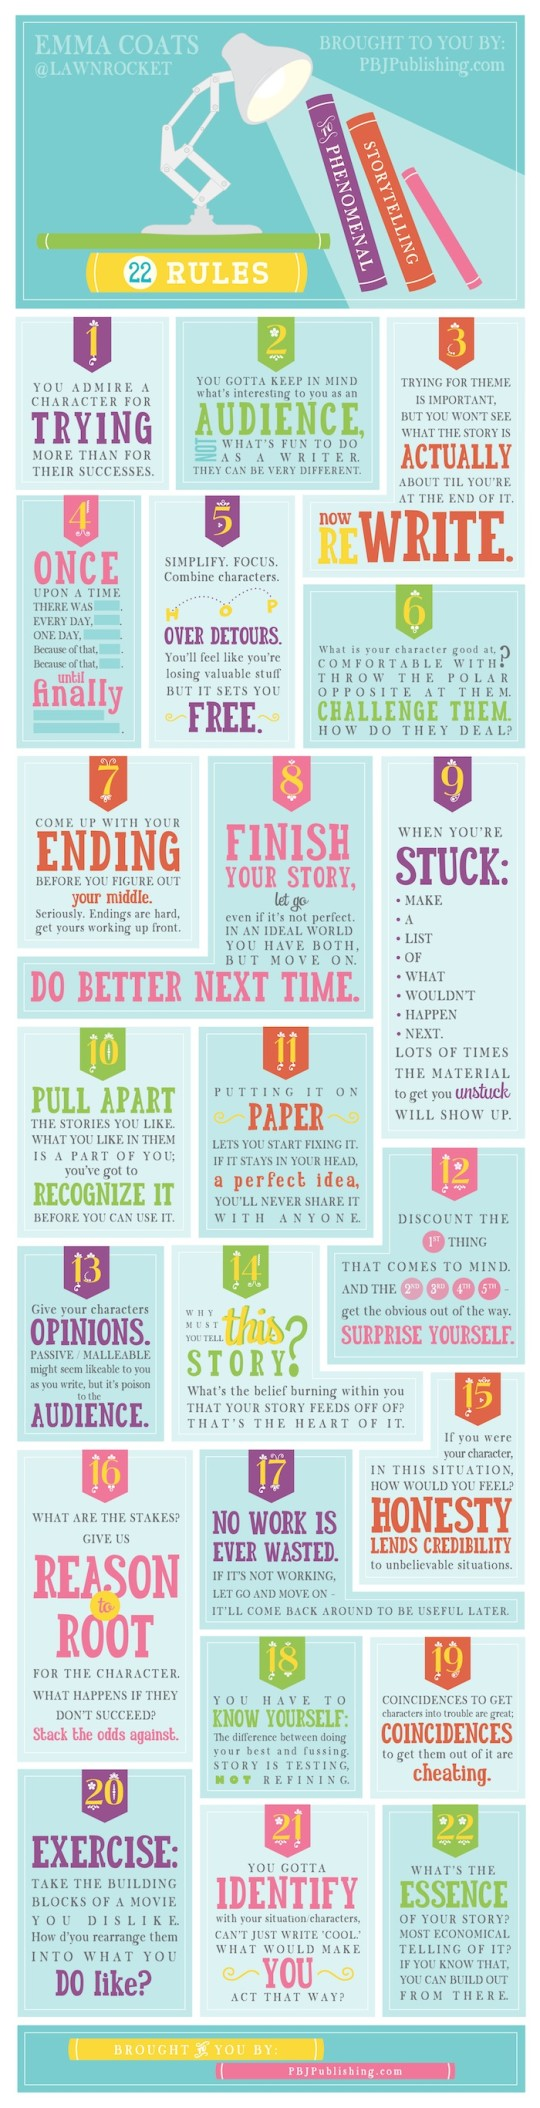 22 rules of successful storytelling #infographic